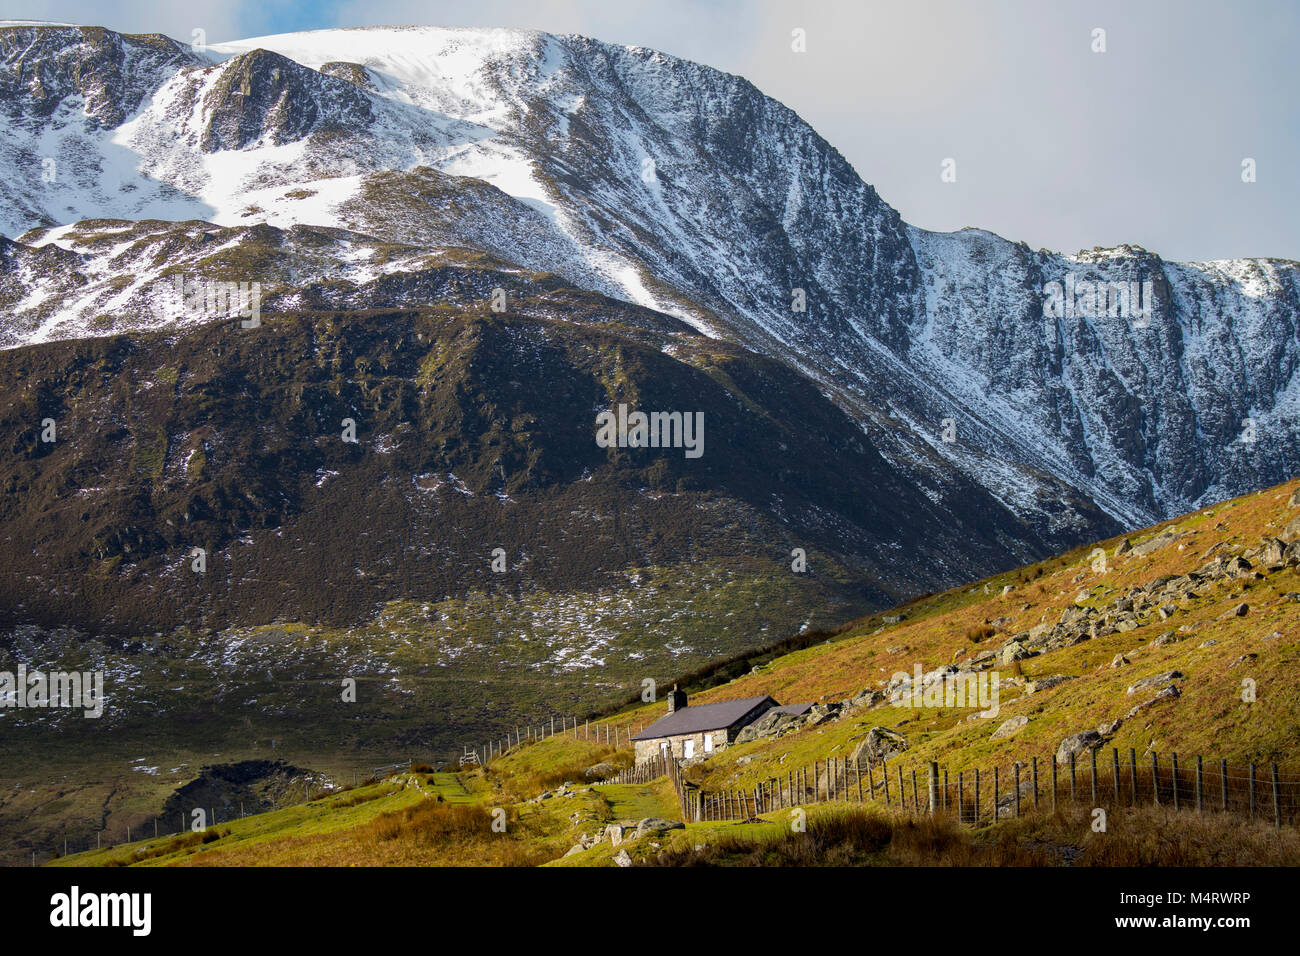 Wild welsh landscape in winter with sun shining over a old farmhouse in the Cwm Eigiau or Eigau Valley with snow - Stock Image